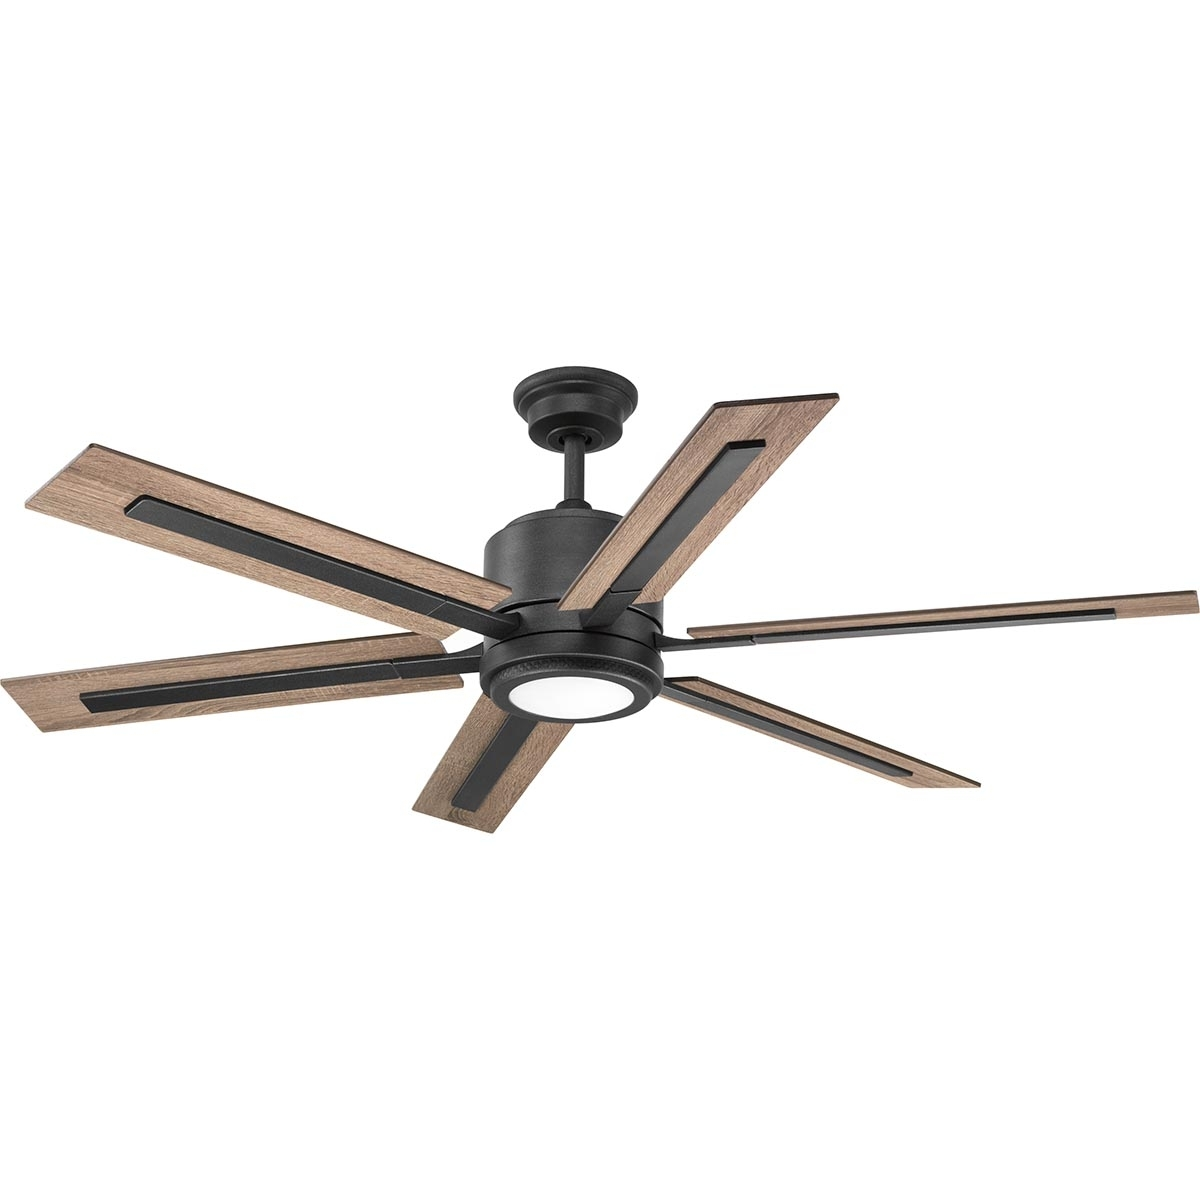 Famous Vintage Look Outdoor Ceiling Fans For Ceiling Fans – Progress Lighting (View 4 of 20)